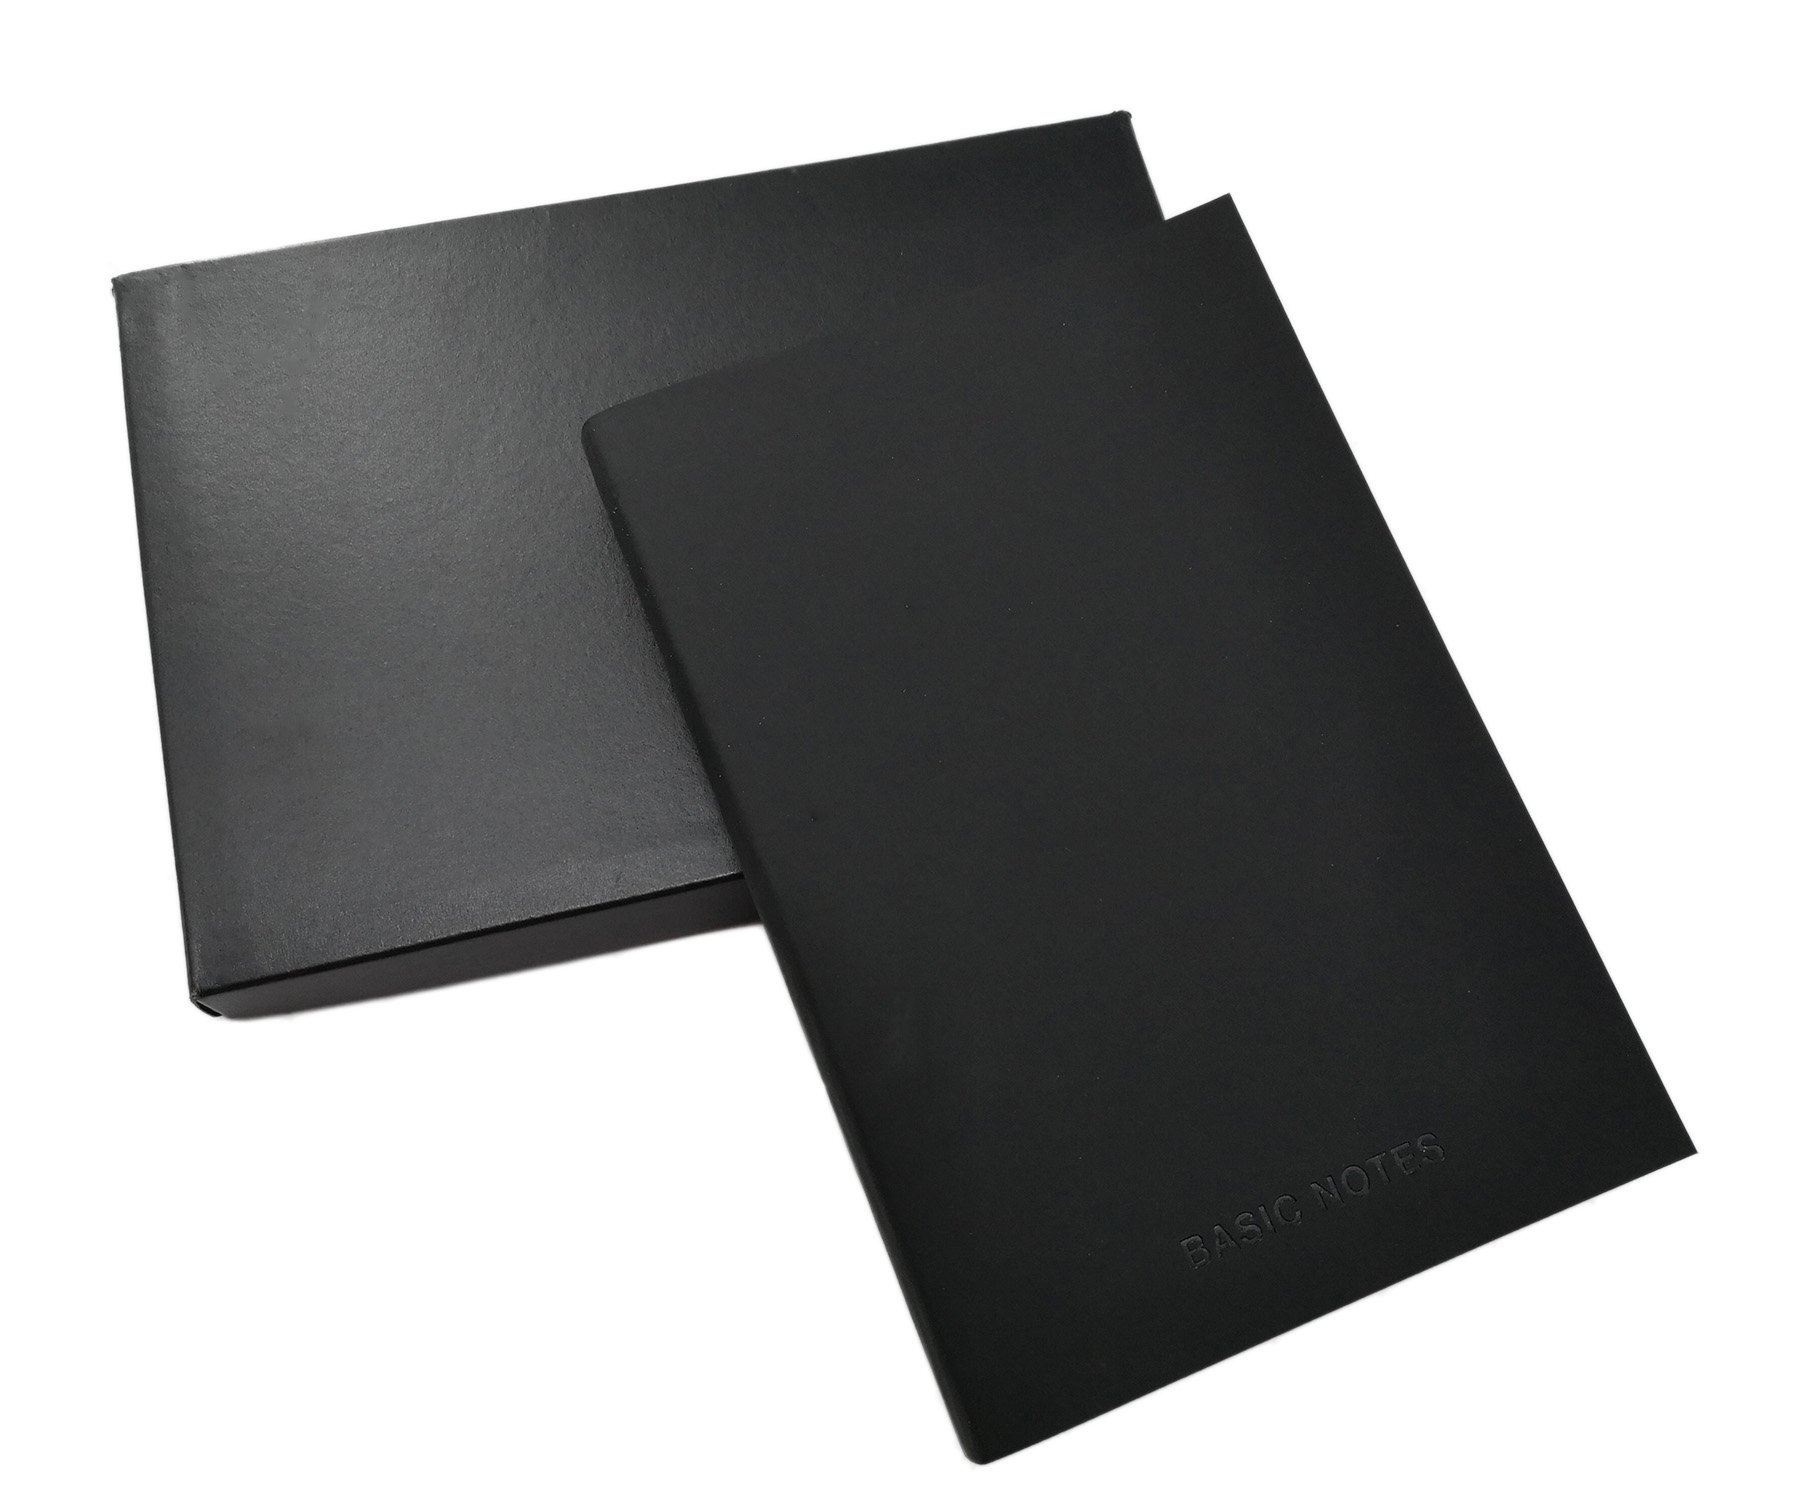 Black Classic A5 Notebook/Journal with PU Leather Cover & 128 Lined Pages for Office/School